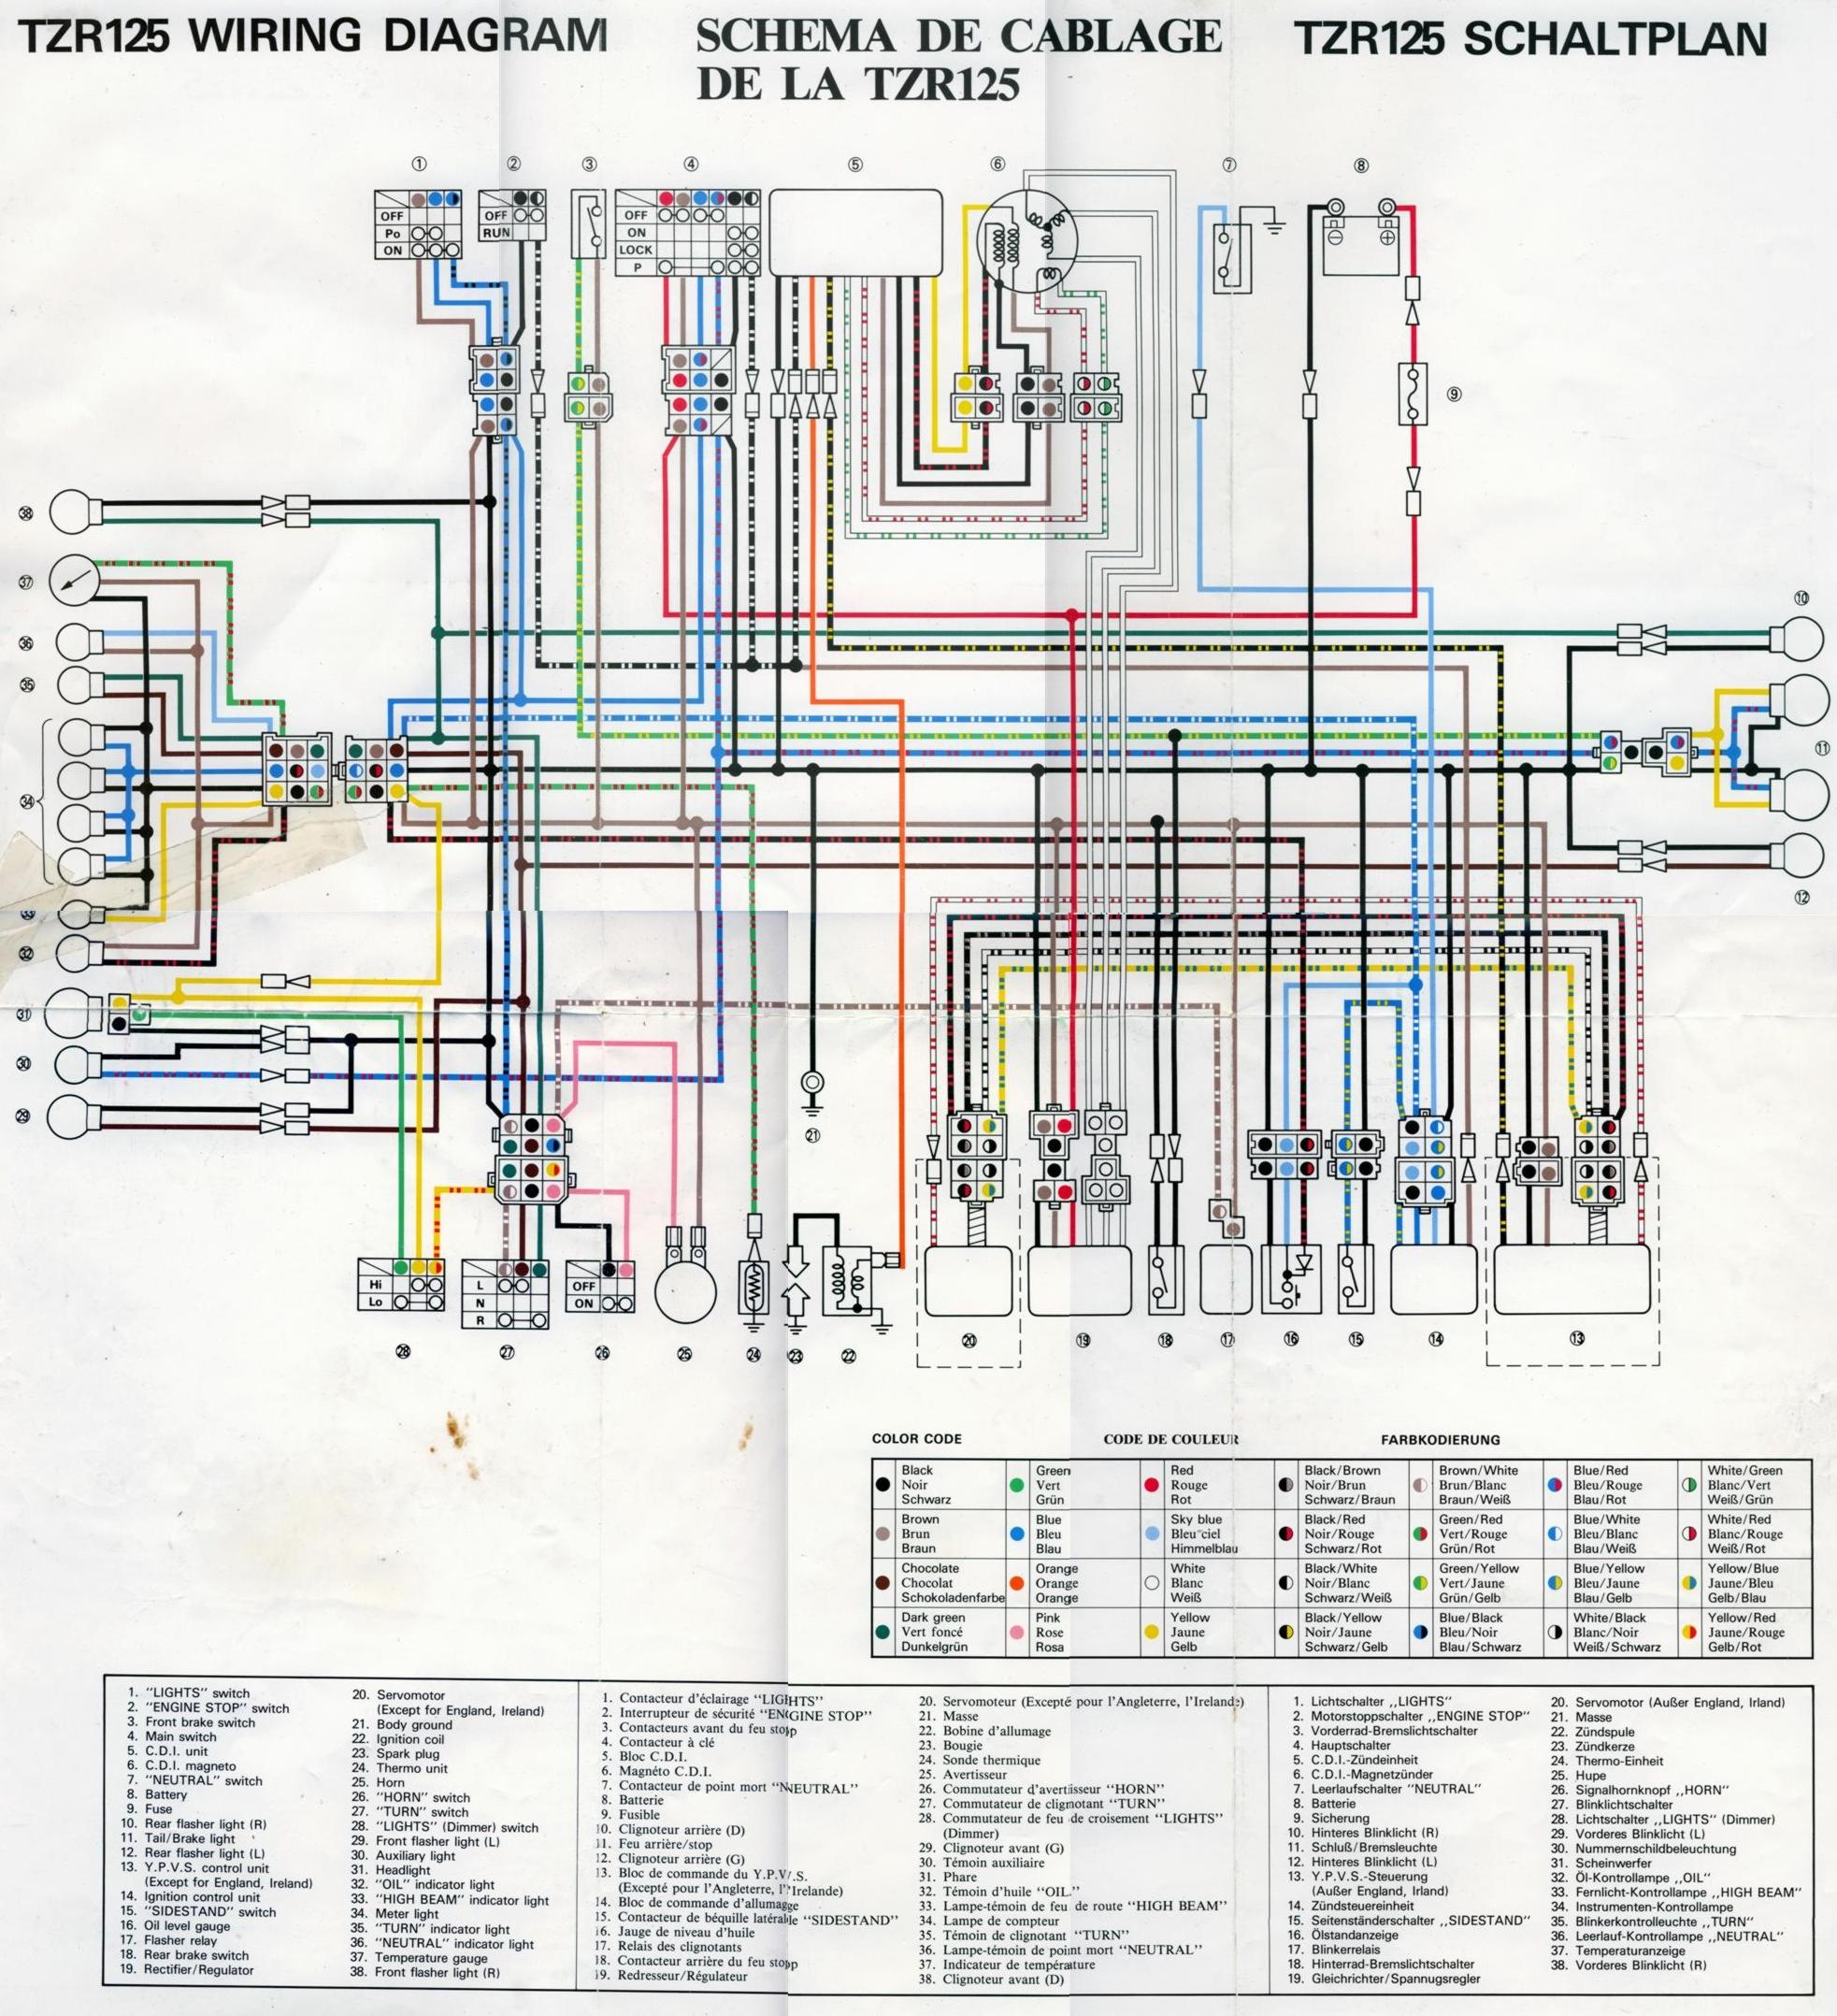 TZR125 Wiring Diagram 2 dj unreal's 2 stroke documentation storage site yamaha ttr 225 wiring diagram at nearapp.co